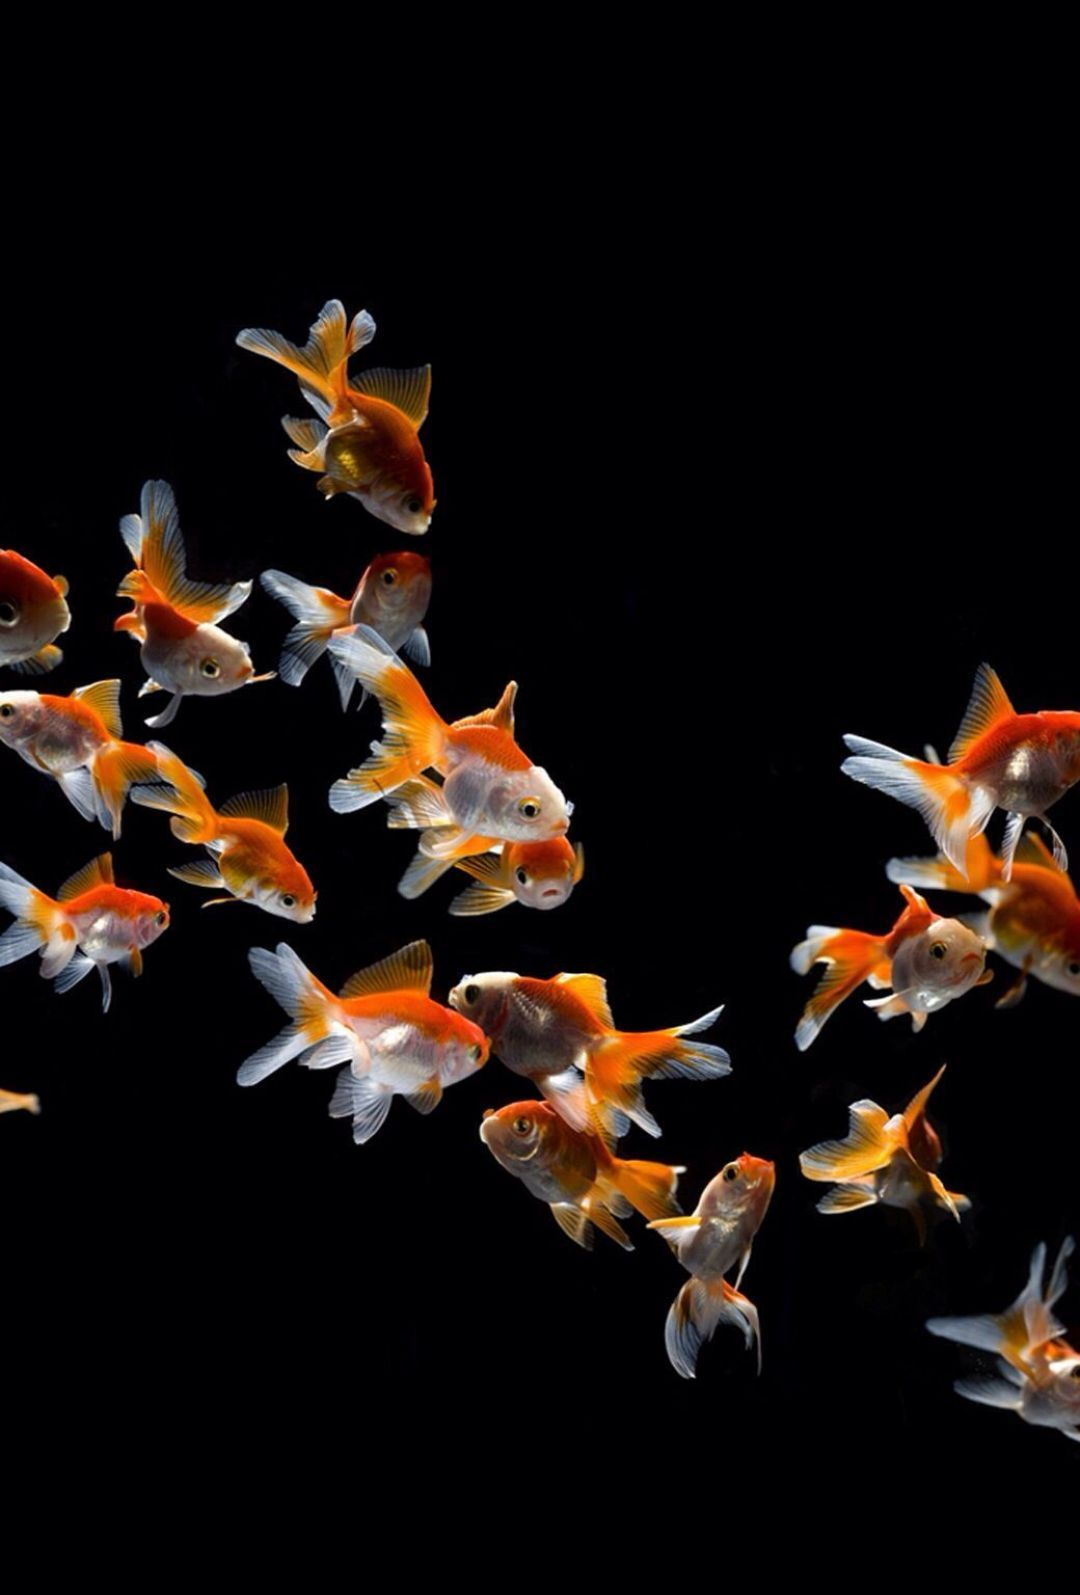 Goldfish Android Iphone Desktop Hd Backgrounds Wallpapers 1080p 4k In 2020 With Images Fish Wallpaper